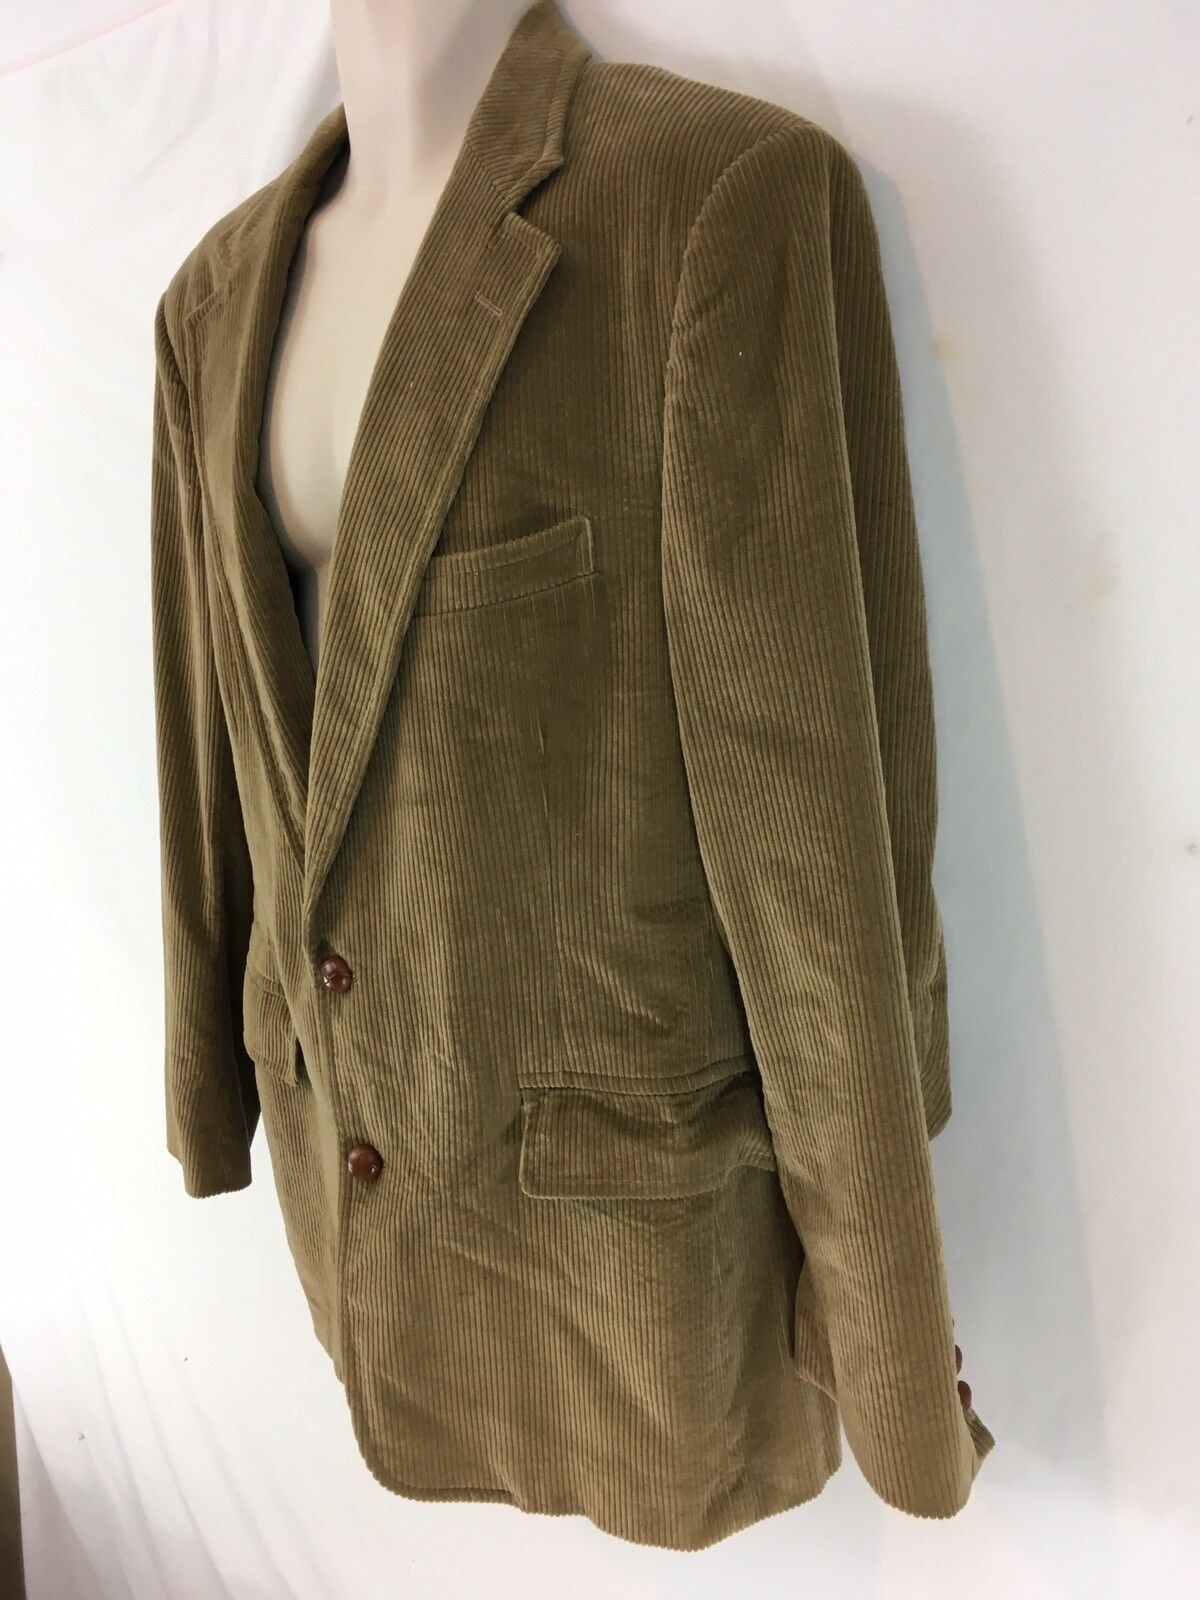 Brooks Brothers Mens 40R Tan USA Made Cotton Corduroy 2 Btn Blazer Sport Jacket